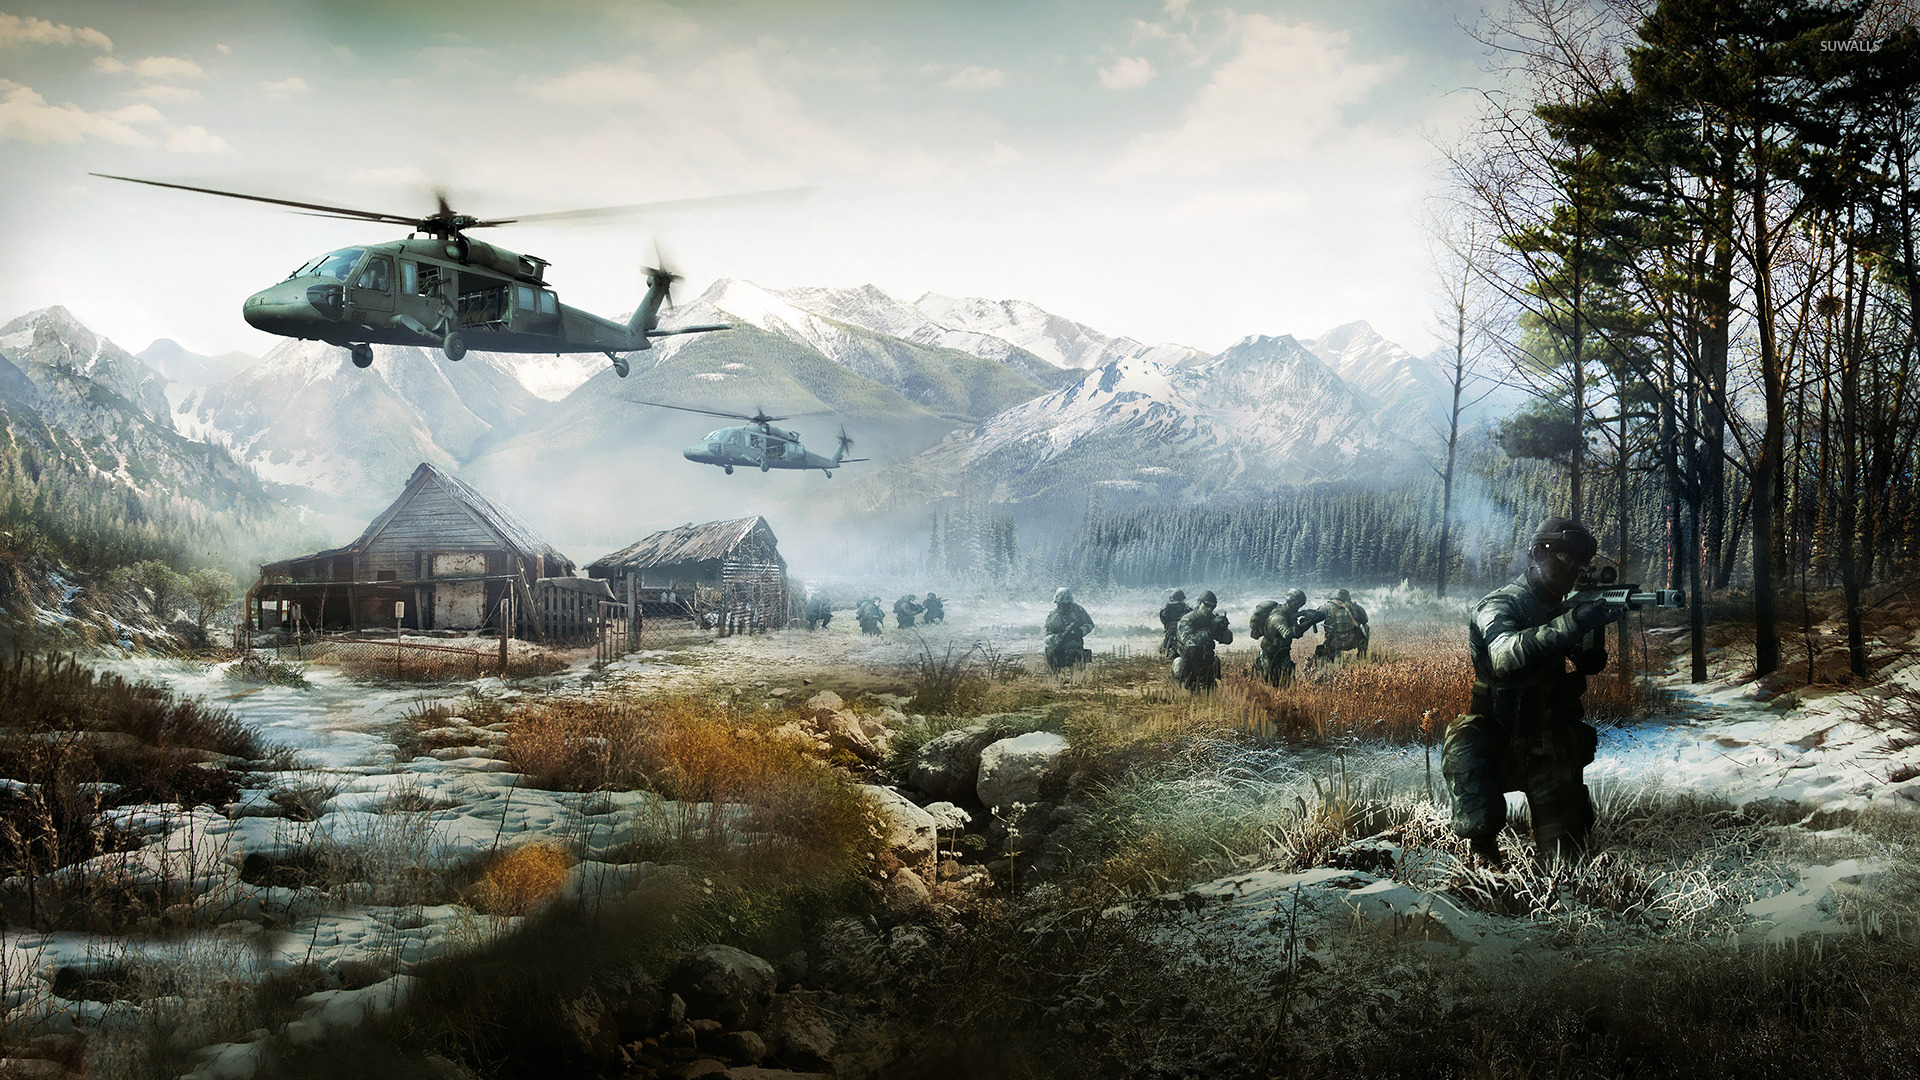 helicopter backgrounds with 1920x1080 Hd Wallpapers Battlefield 4 on Soft Wallpapers moreover Big as well Eurocopter Ec 120 moreover Mh 53 Pave Low Helicopter Wallpapers moreover A 10 Thunderbolt Wallpaper Hd.